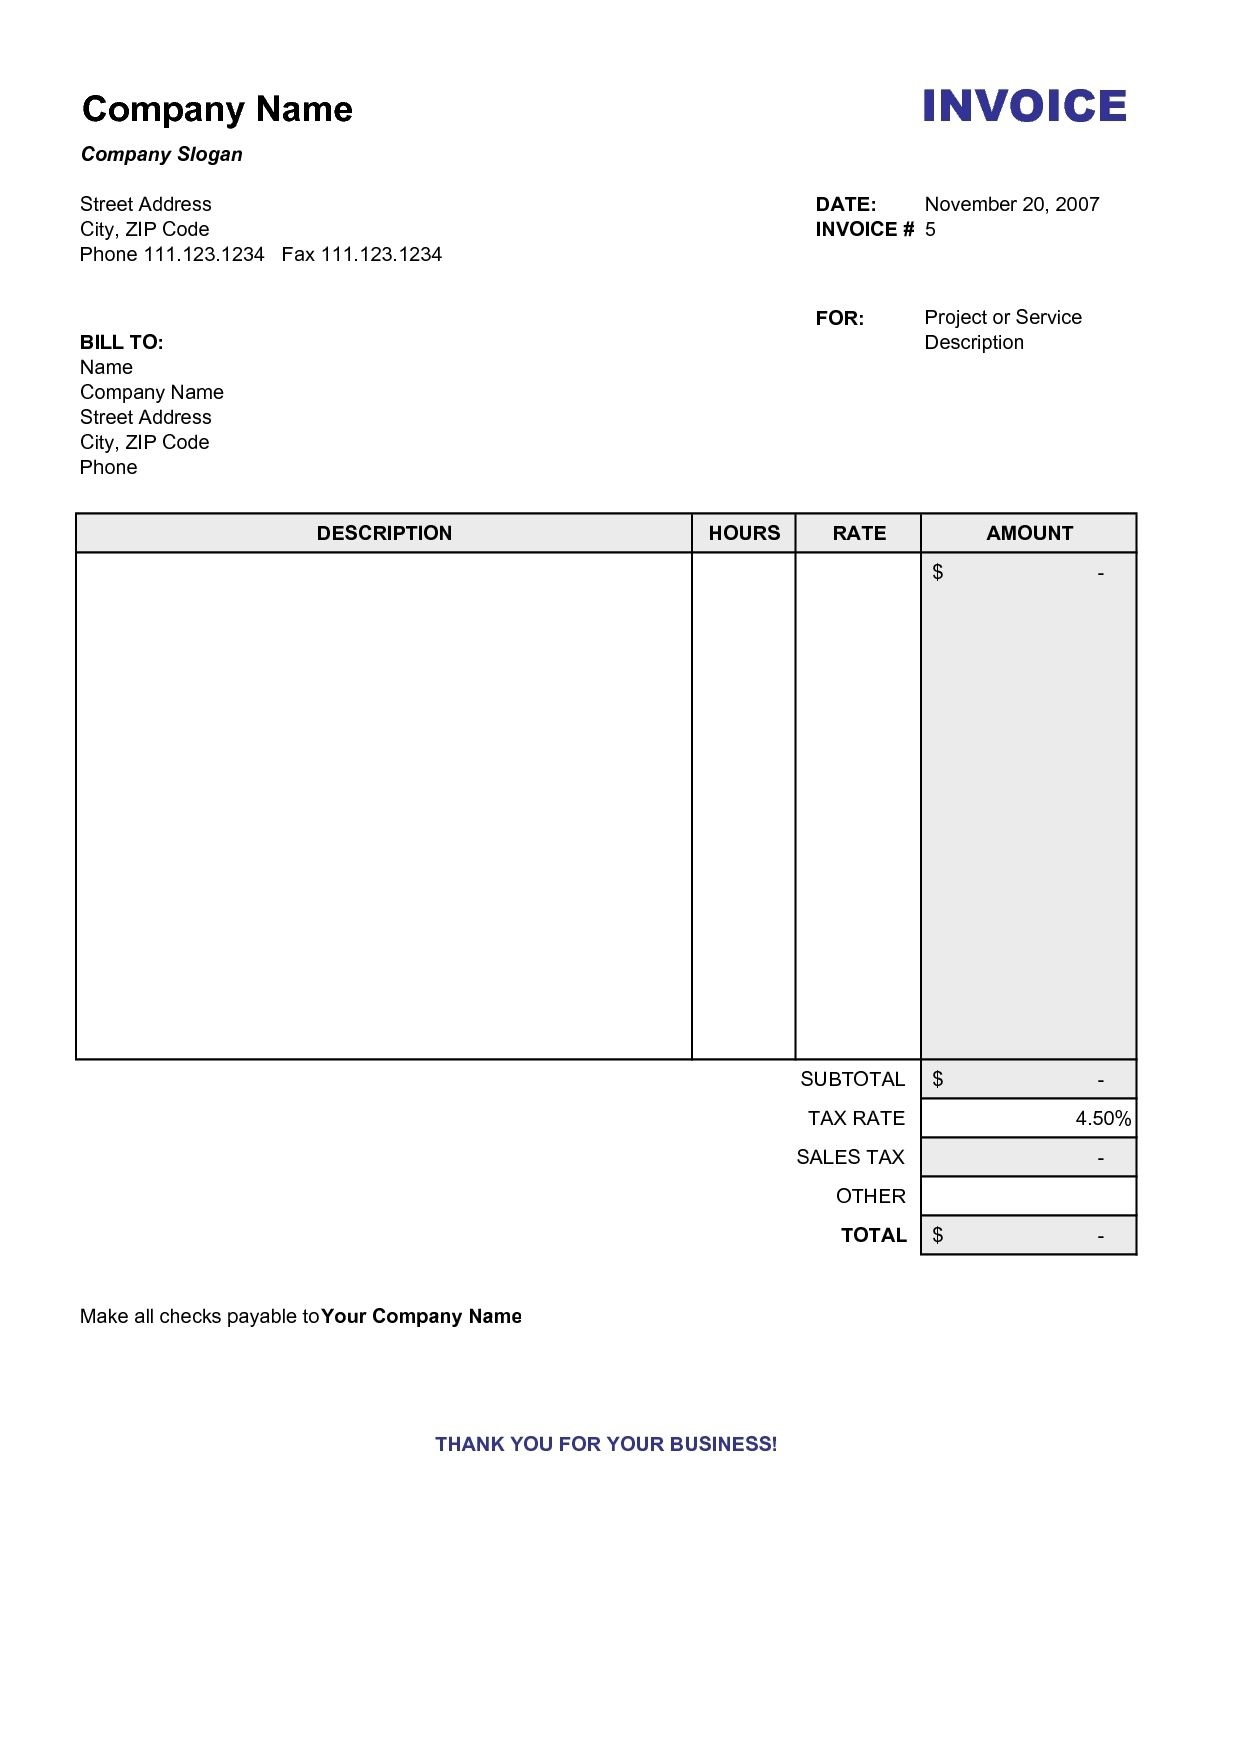 Copy Of A Blank Invoice Invoice Template Free 2016 Copy Of Blank - Free Printable Blank Invoice